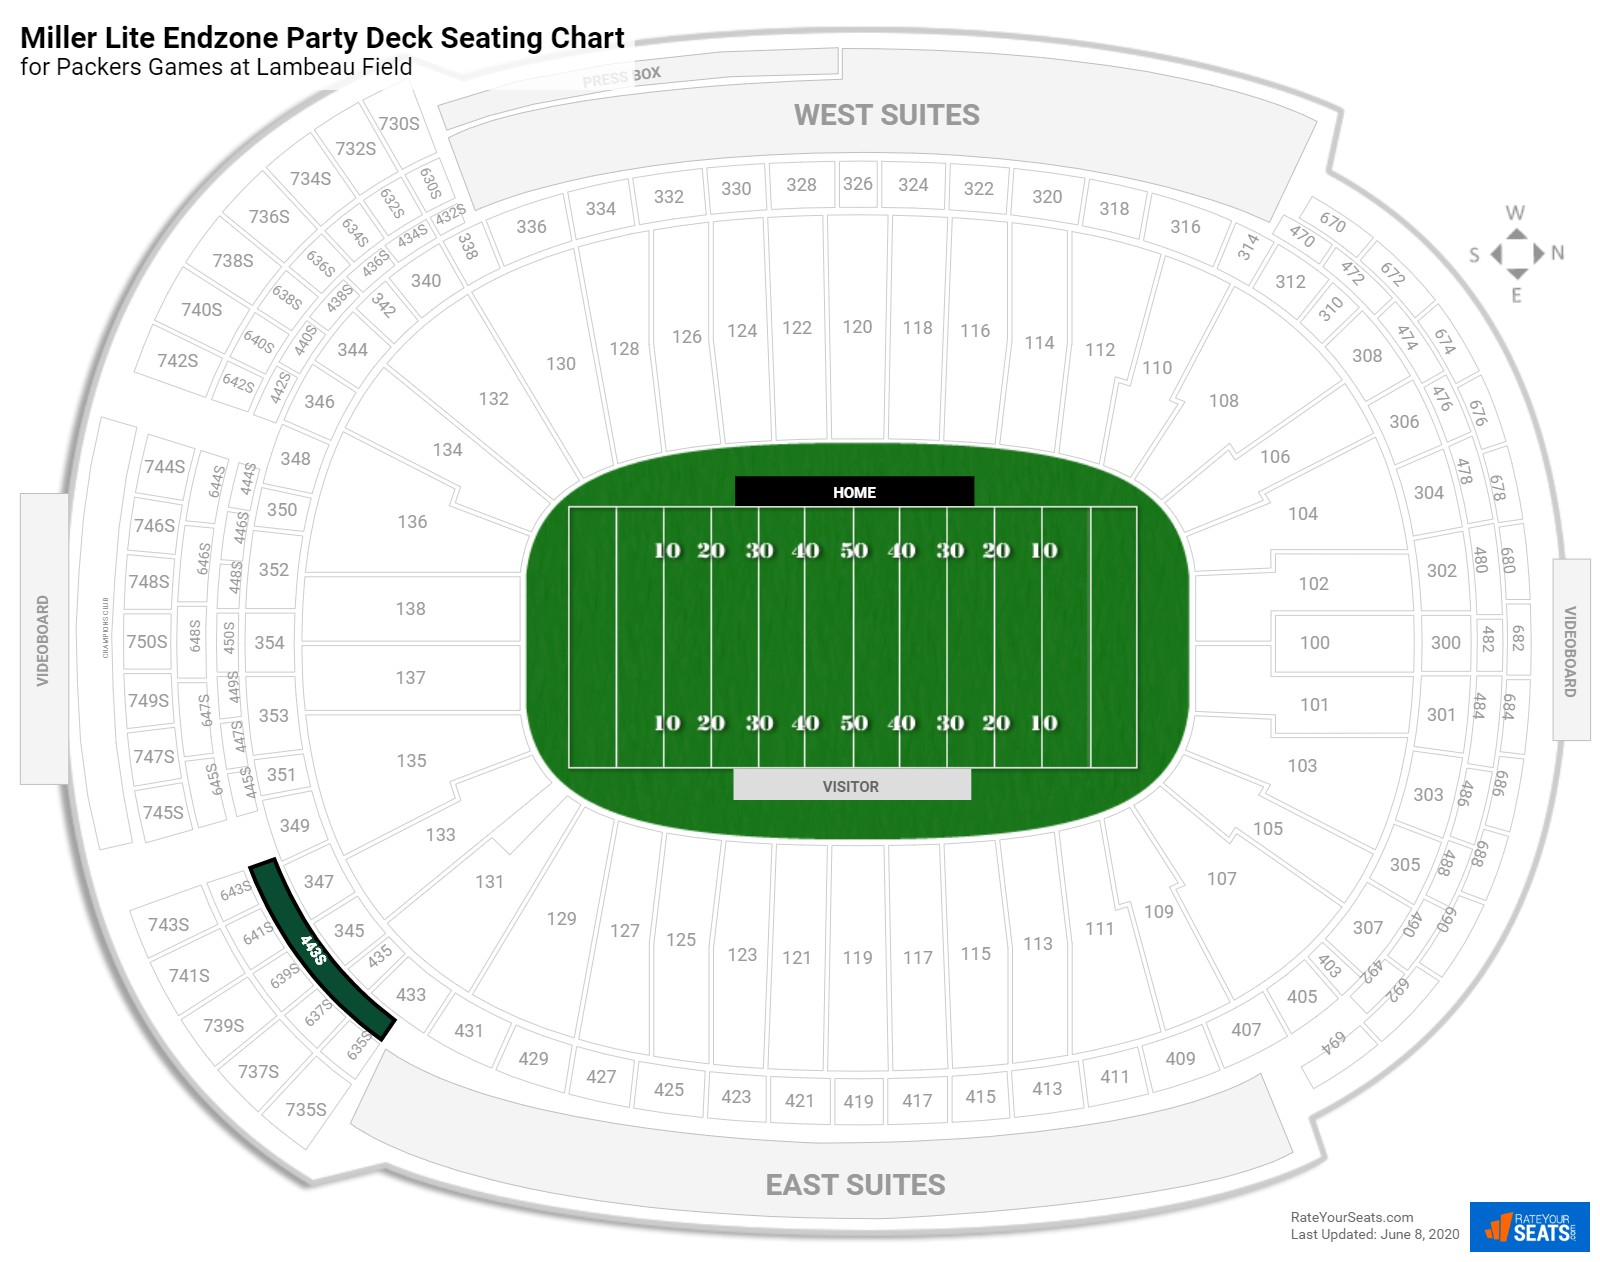 Lambeau Field Miller Lite Endzone Party Deck seating chart